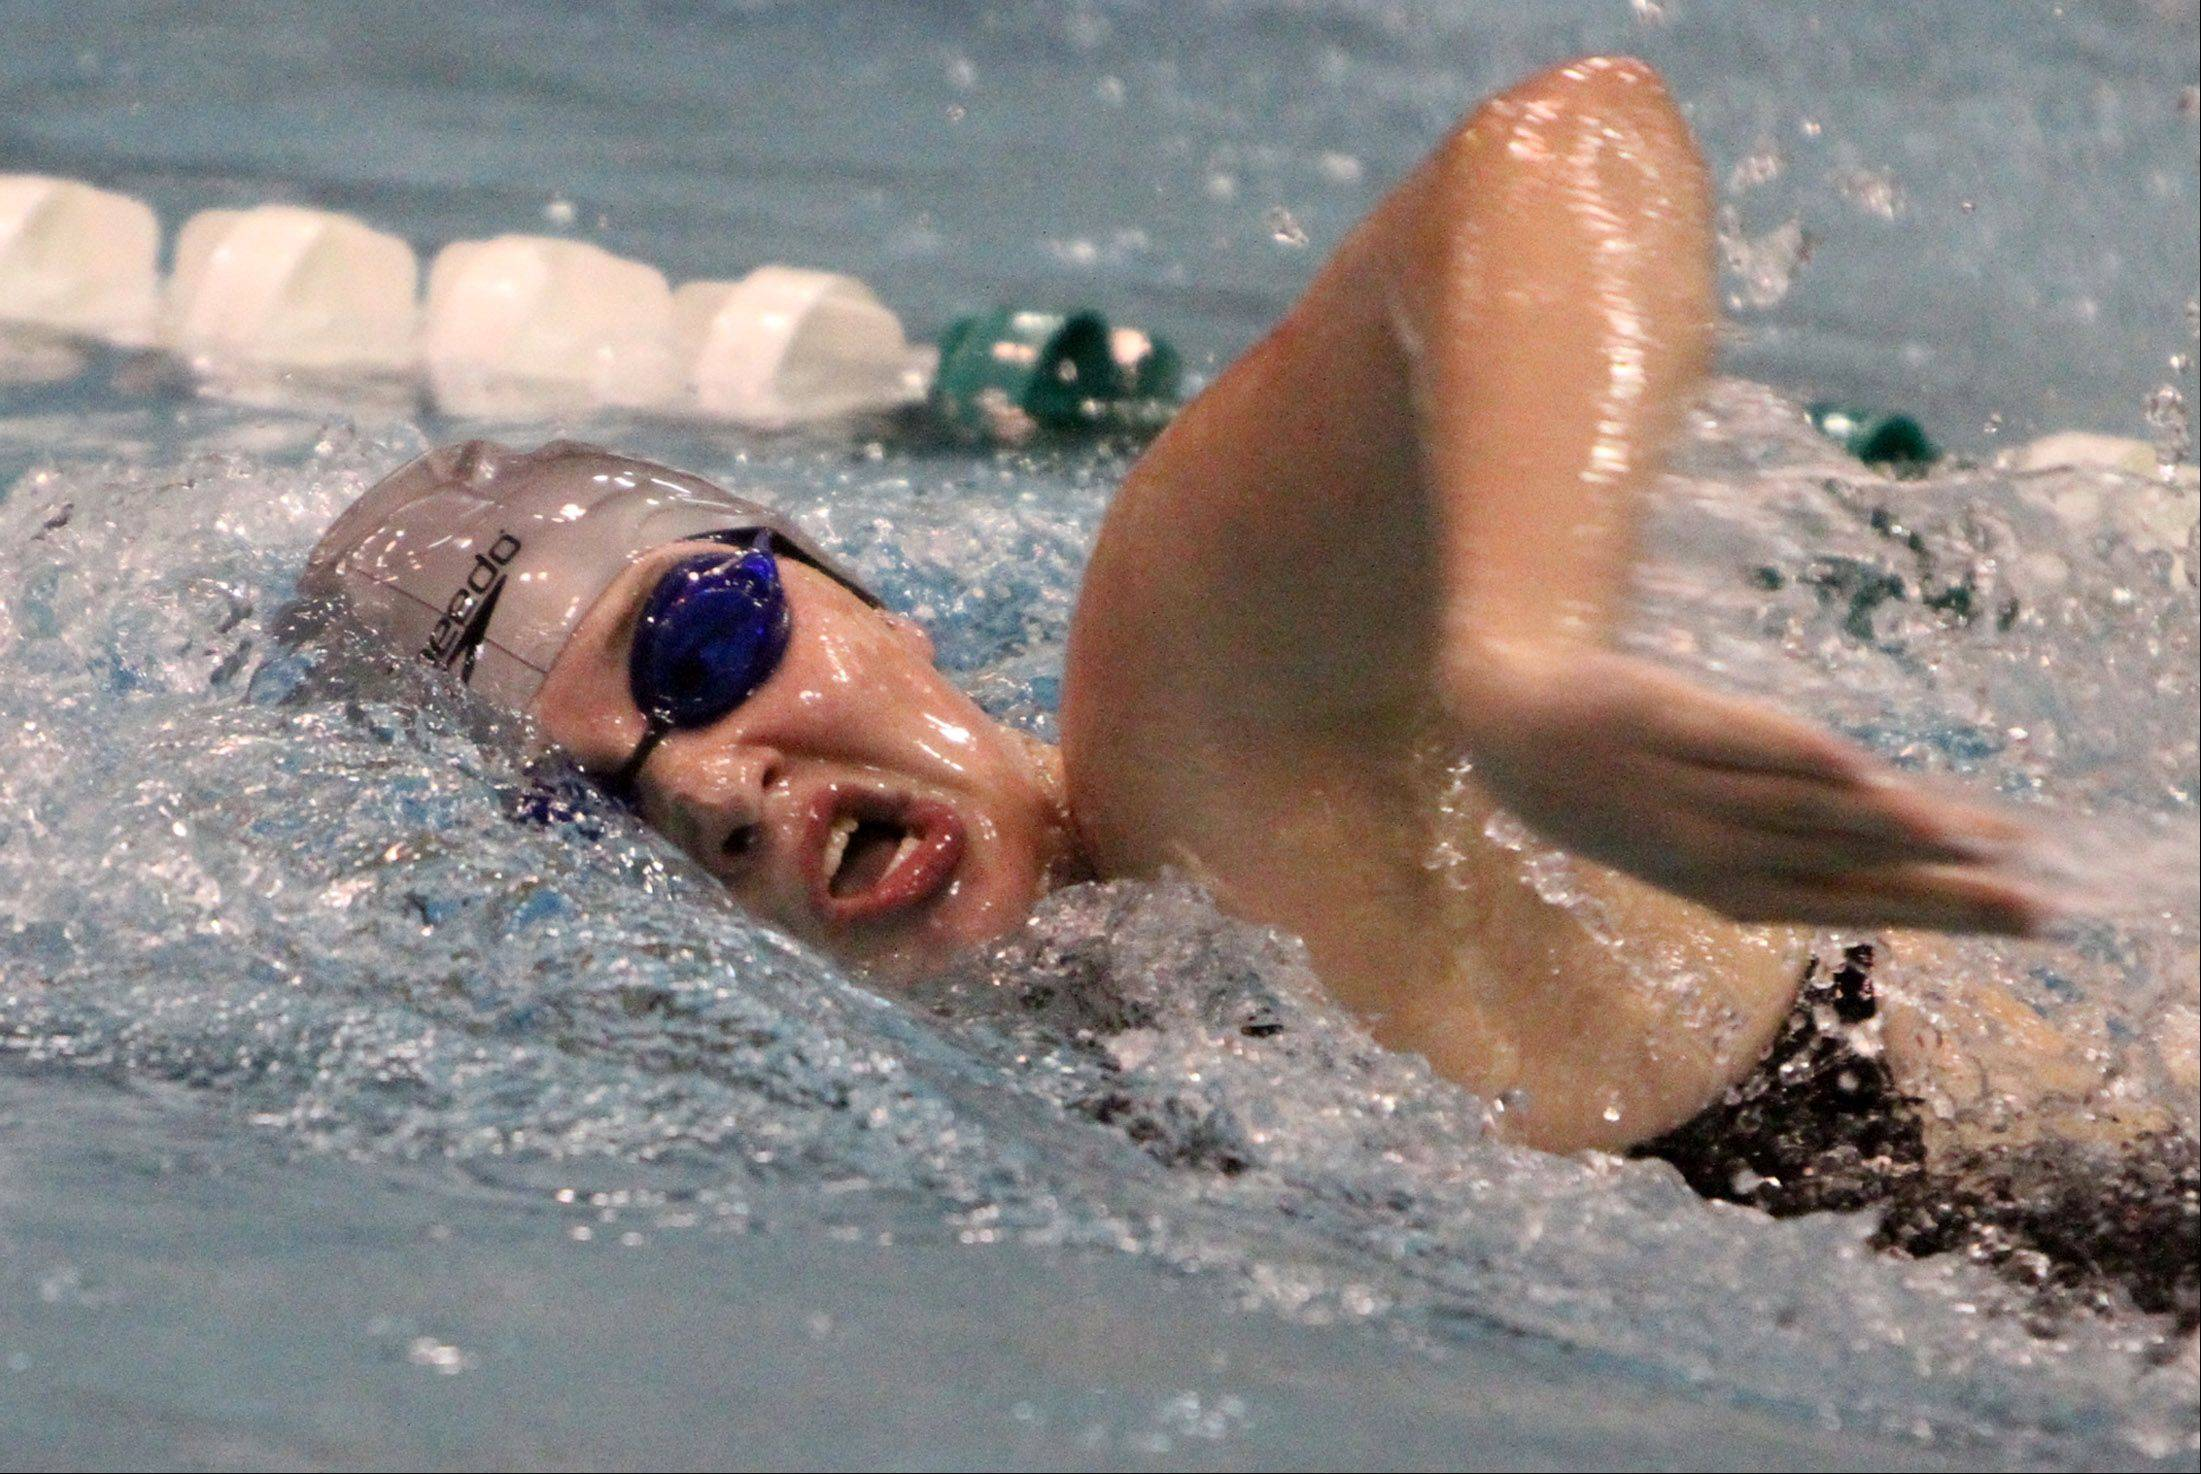 Cary-Grove's Lauren Curtis competes in the 200-yard freestyle at IHSA state final preliminaries in Winnetka on Friday, November 18th.